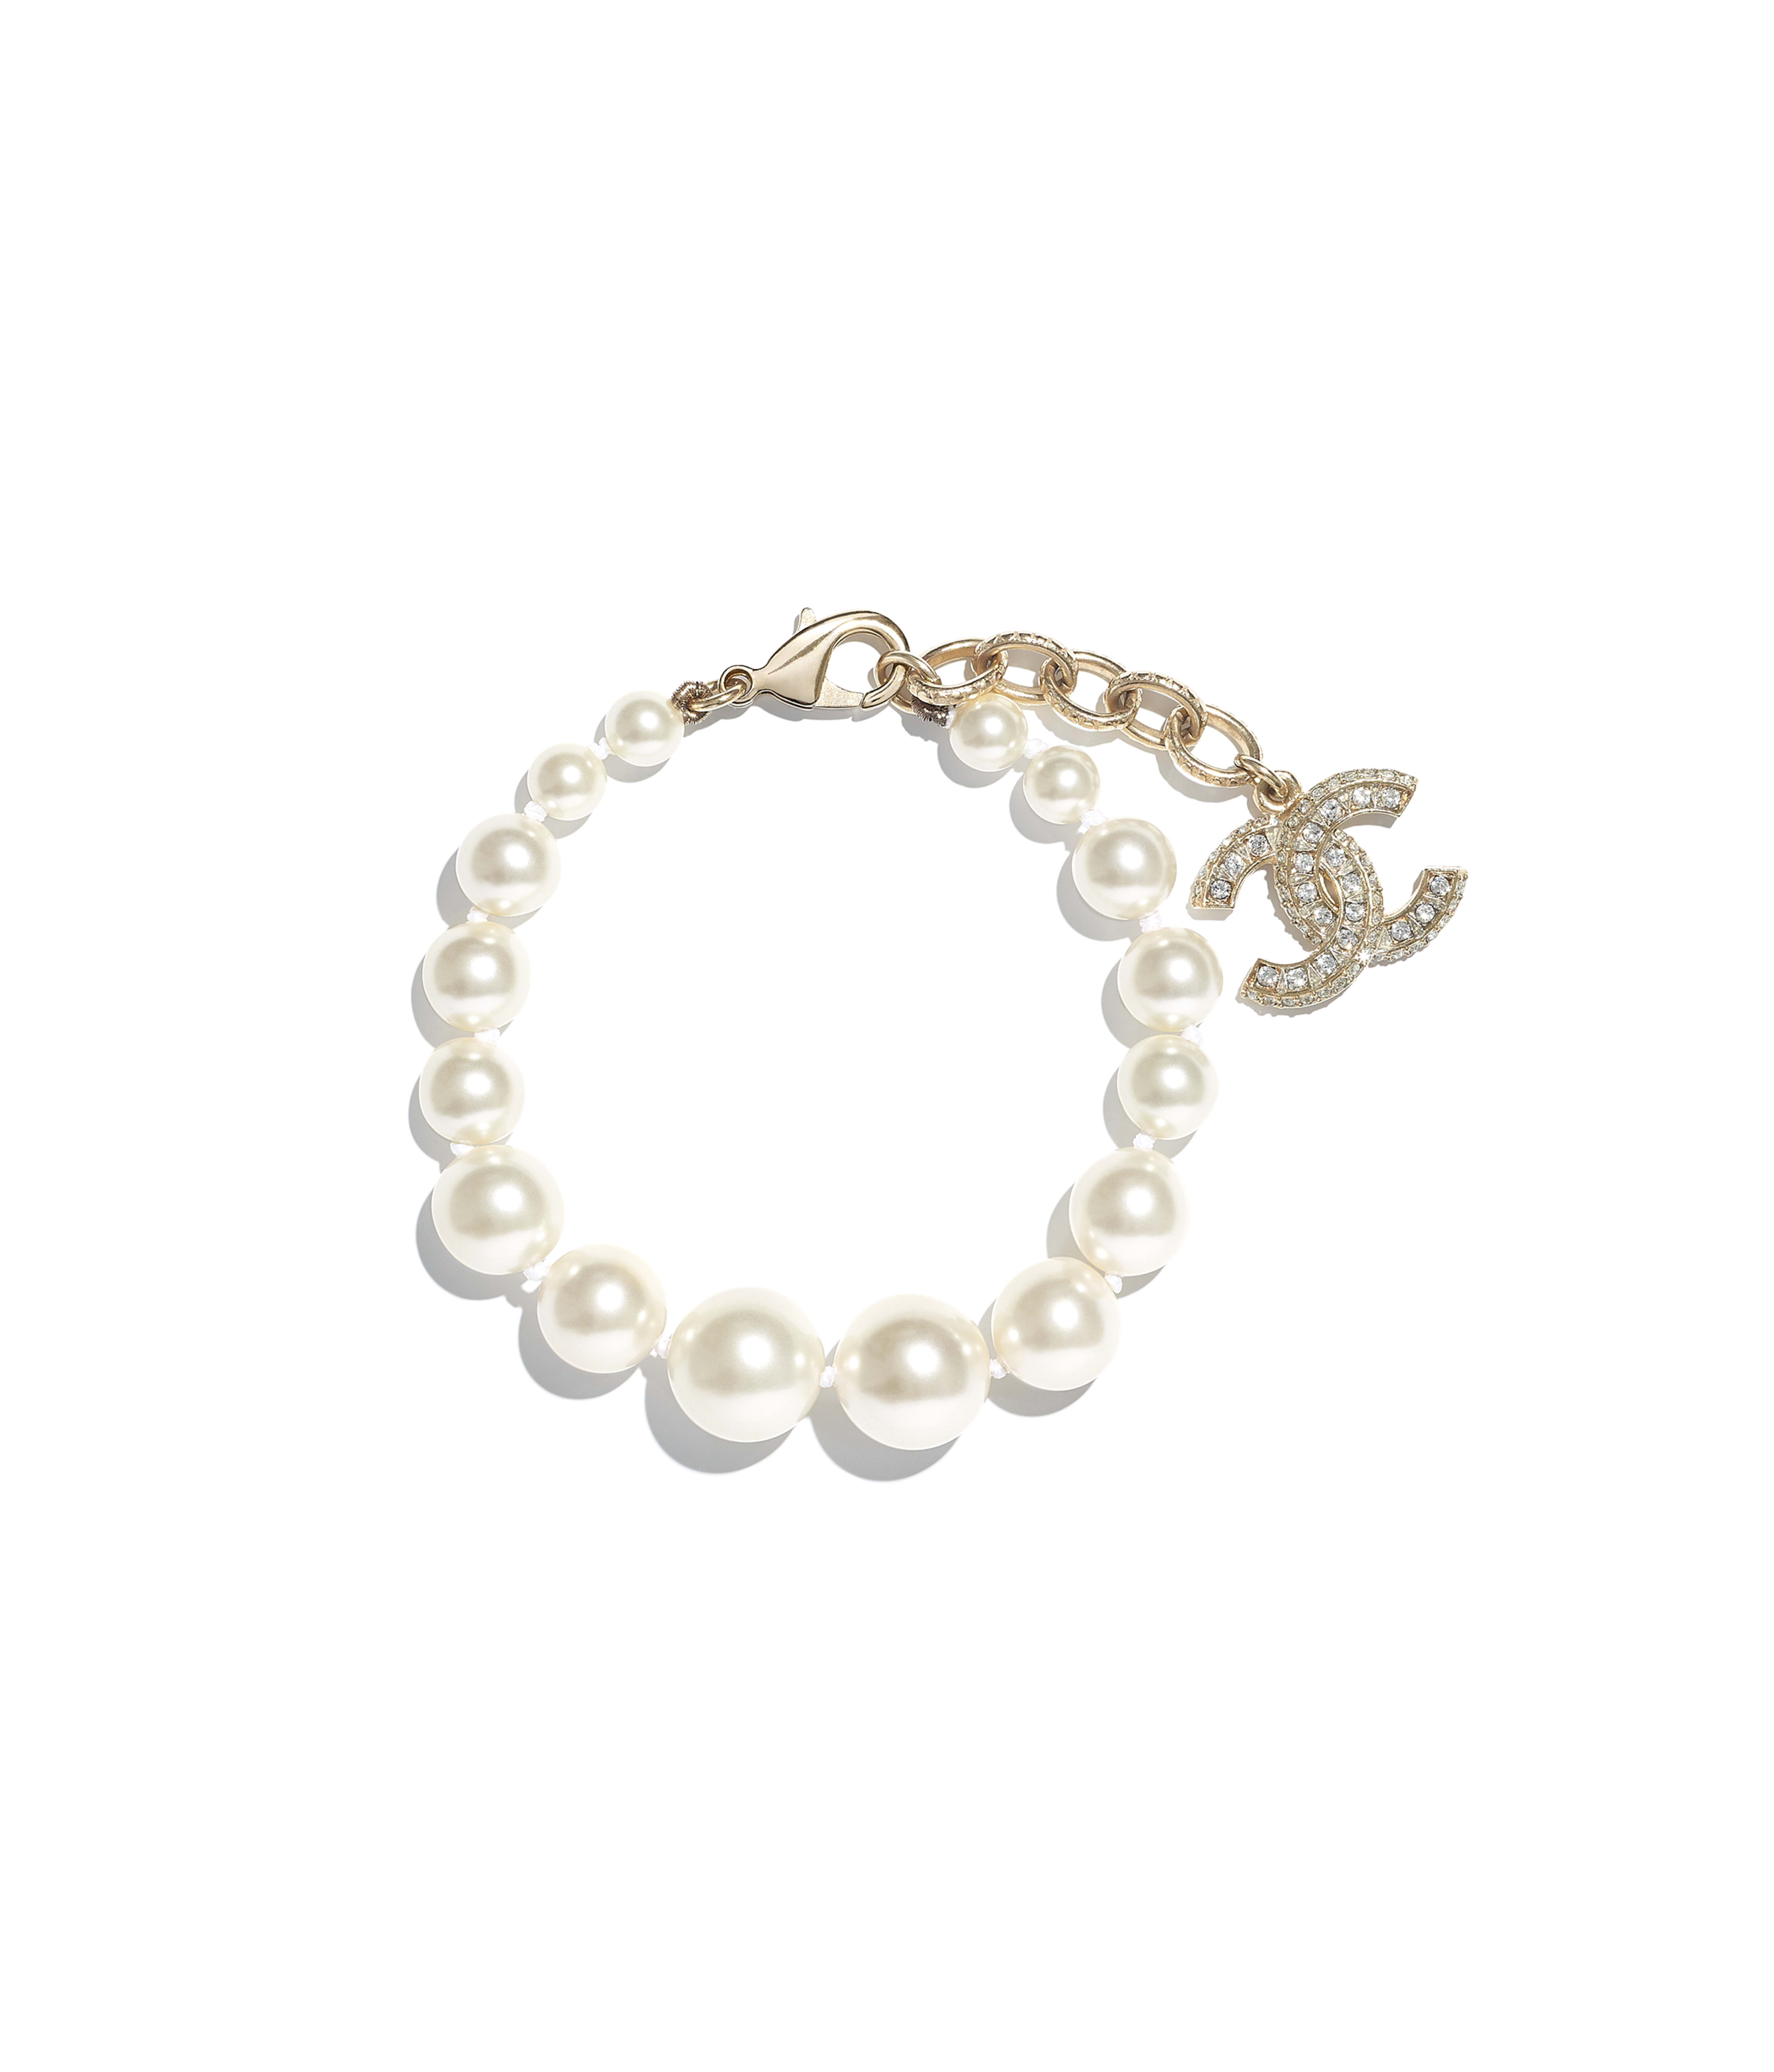 Bracelet Metal Gl Pearls Resin Str Gold Pearly White Crystal Ref A86499y09902z2953